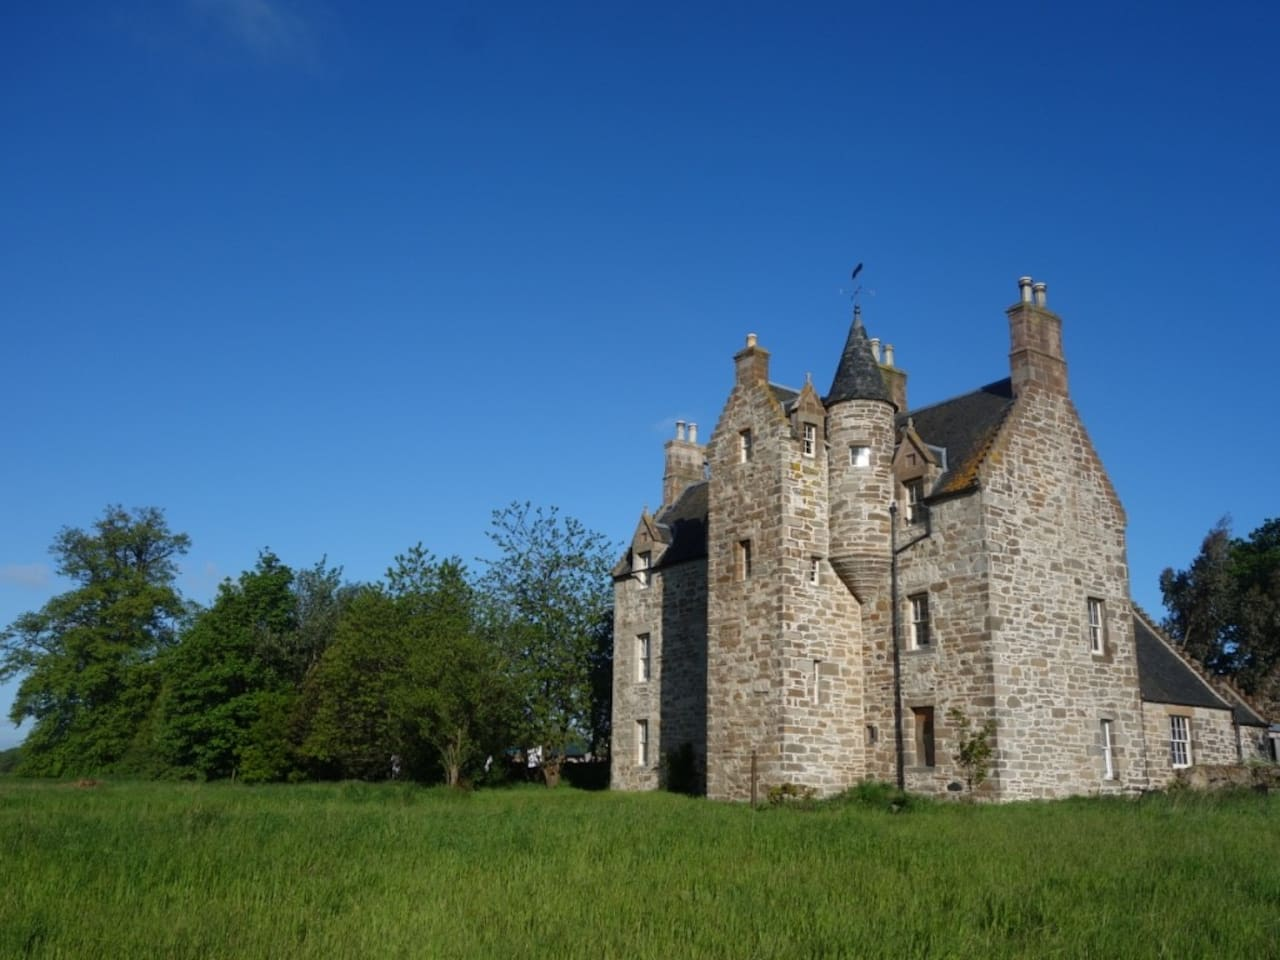 Rent a Castle on AirBnB